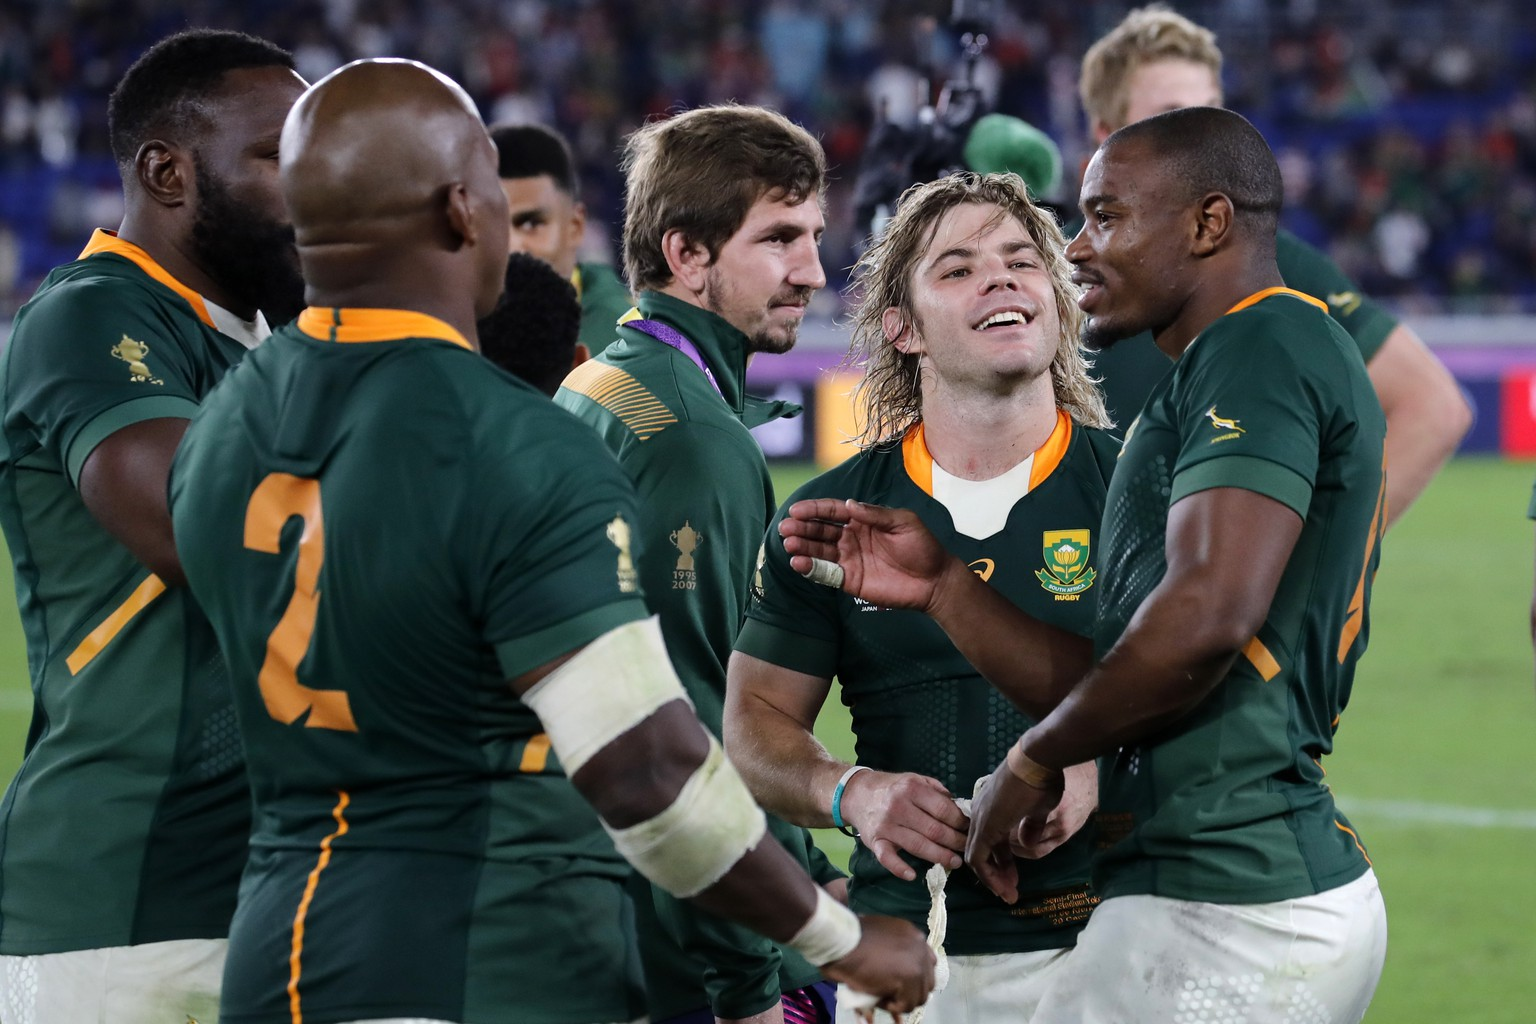 South Africa players celebrate after the Rugby World Cup semifinal at International Yokohama Stadium between Wales and South Africa in Yokohama, Japan, Sunday, Oct. 27, 2019. South Africa won 19-16. (AP Photo/Christophe Ena)